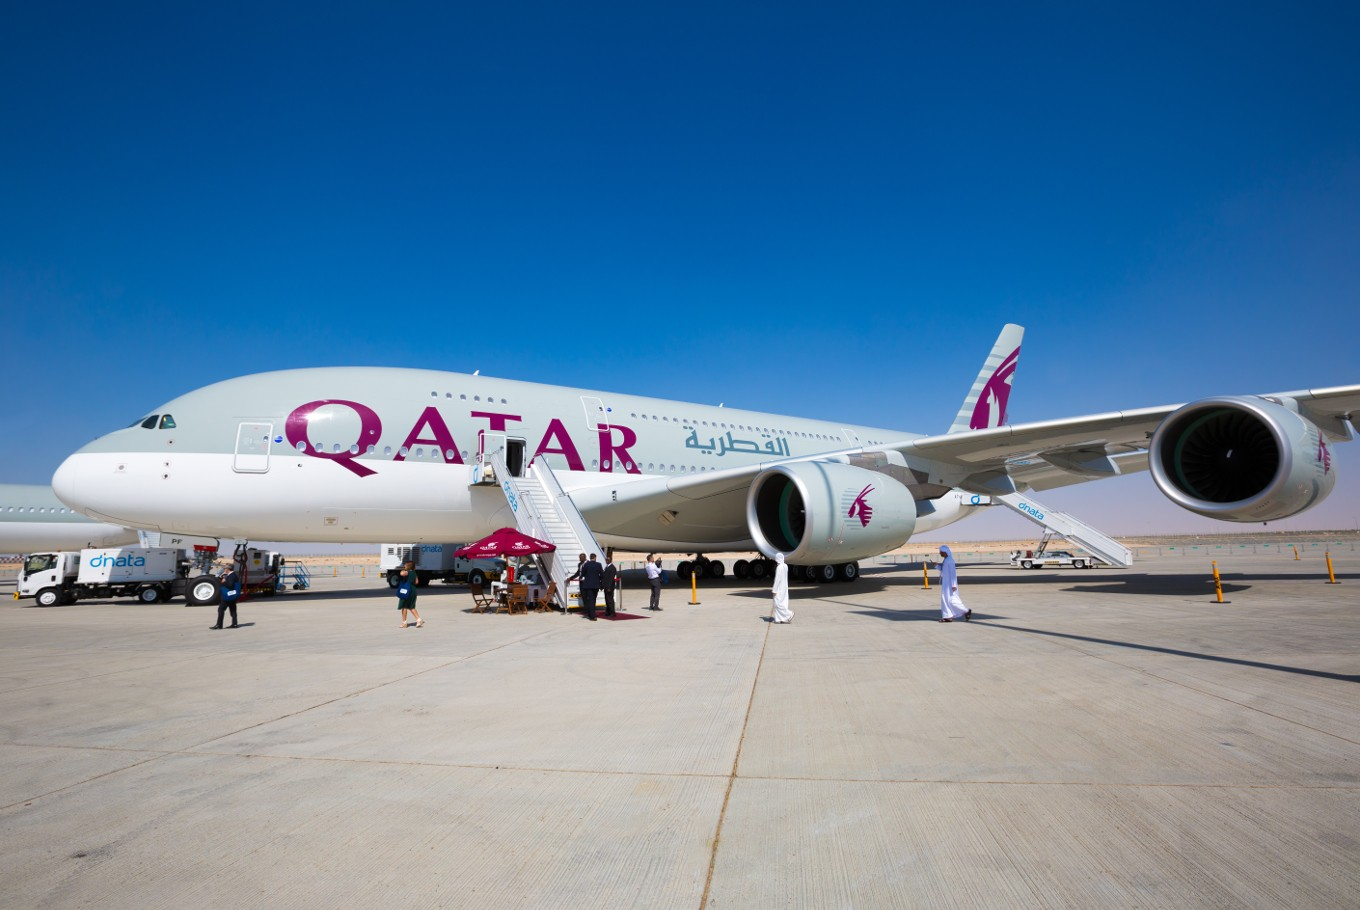 A multiple award-winning airline, Qatar Airways was named 'World's Best Airline' by the 2019 World Airline Awards, managed by the international air transport rating organisation Skytrax.